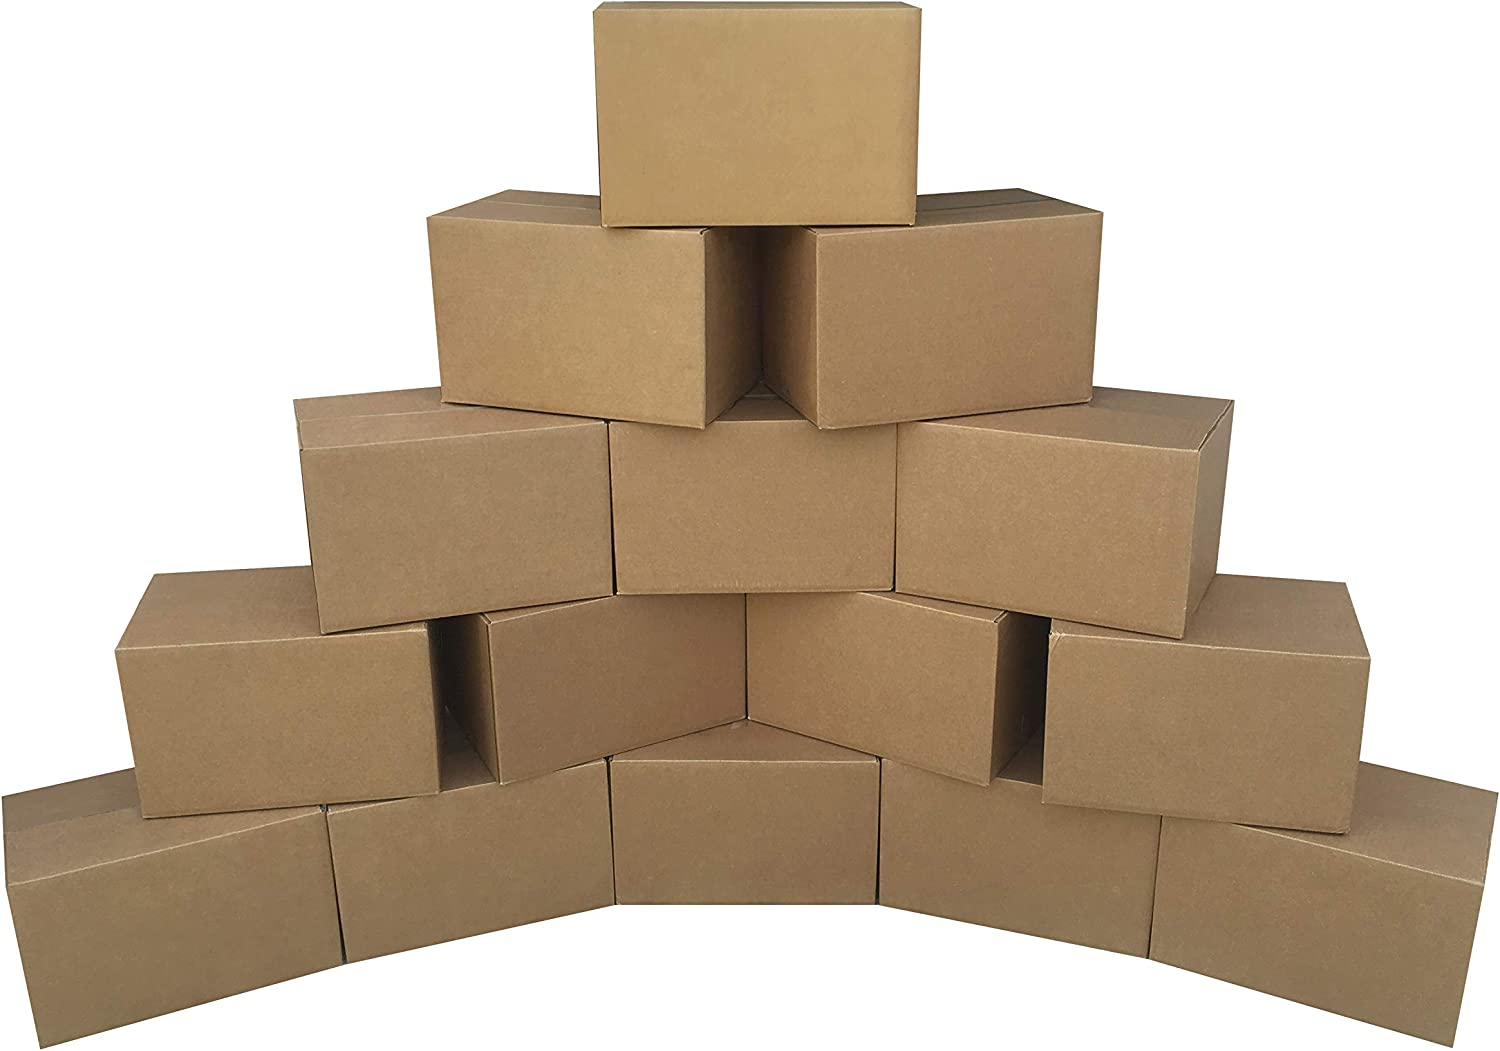 Small Moving Boxes - 16x10x10 - Cardboard Box